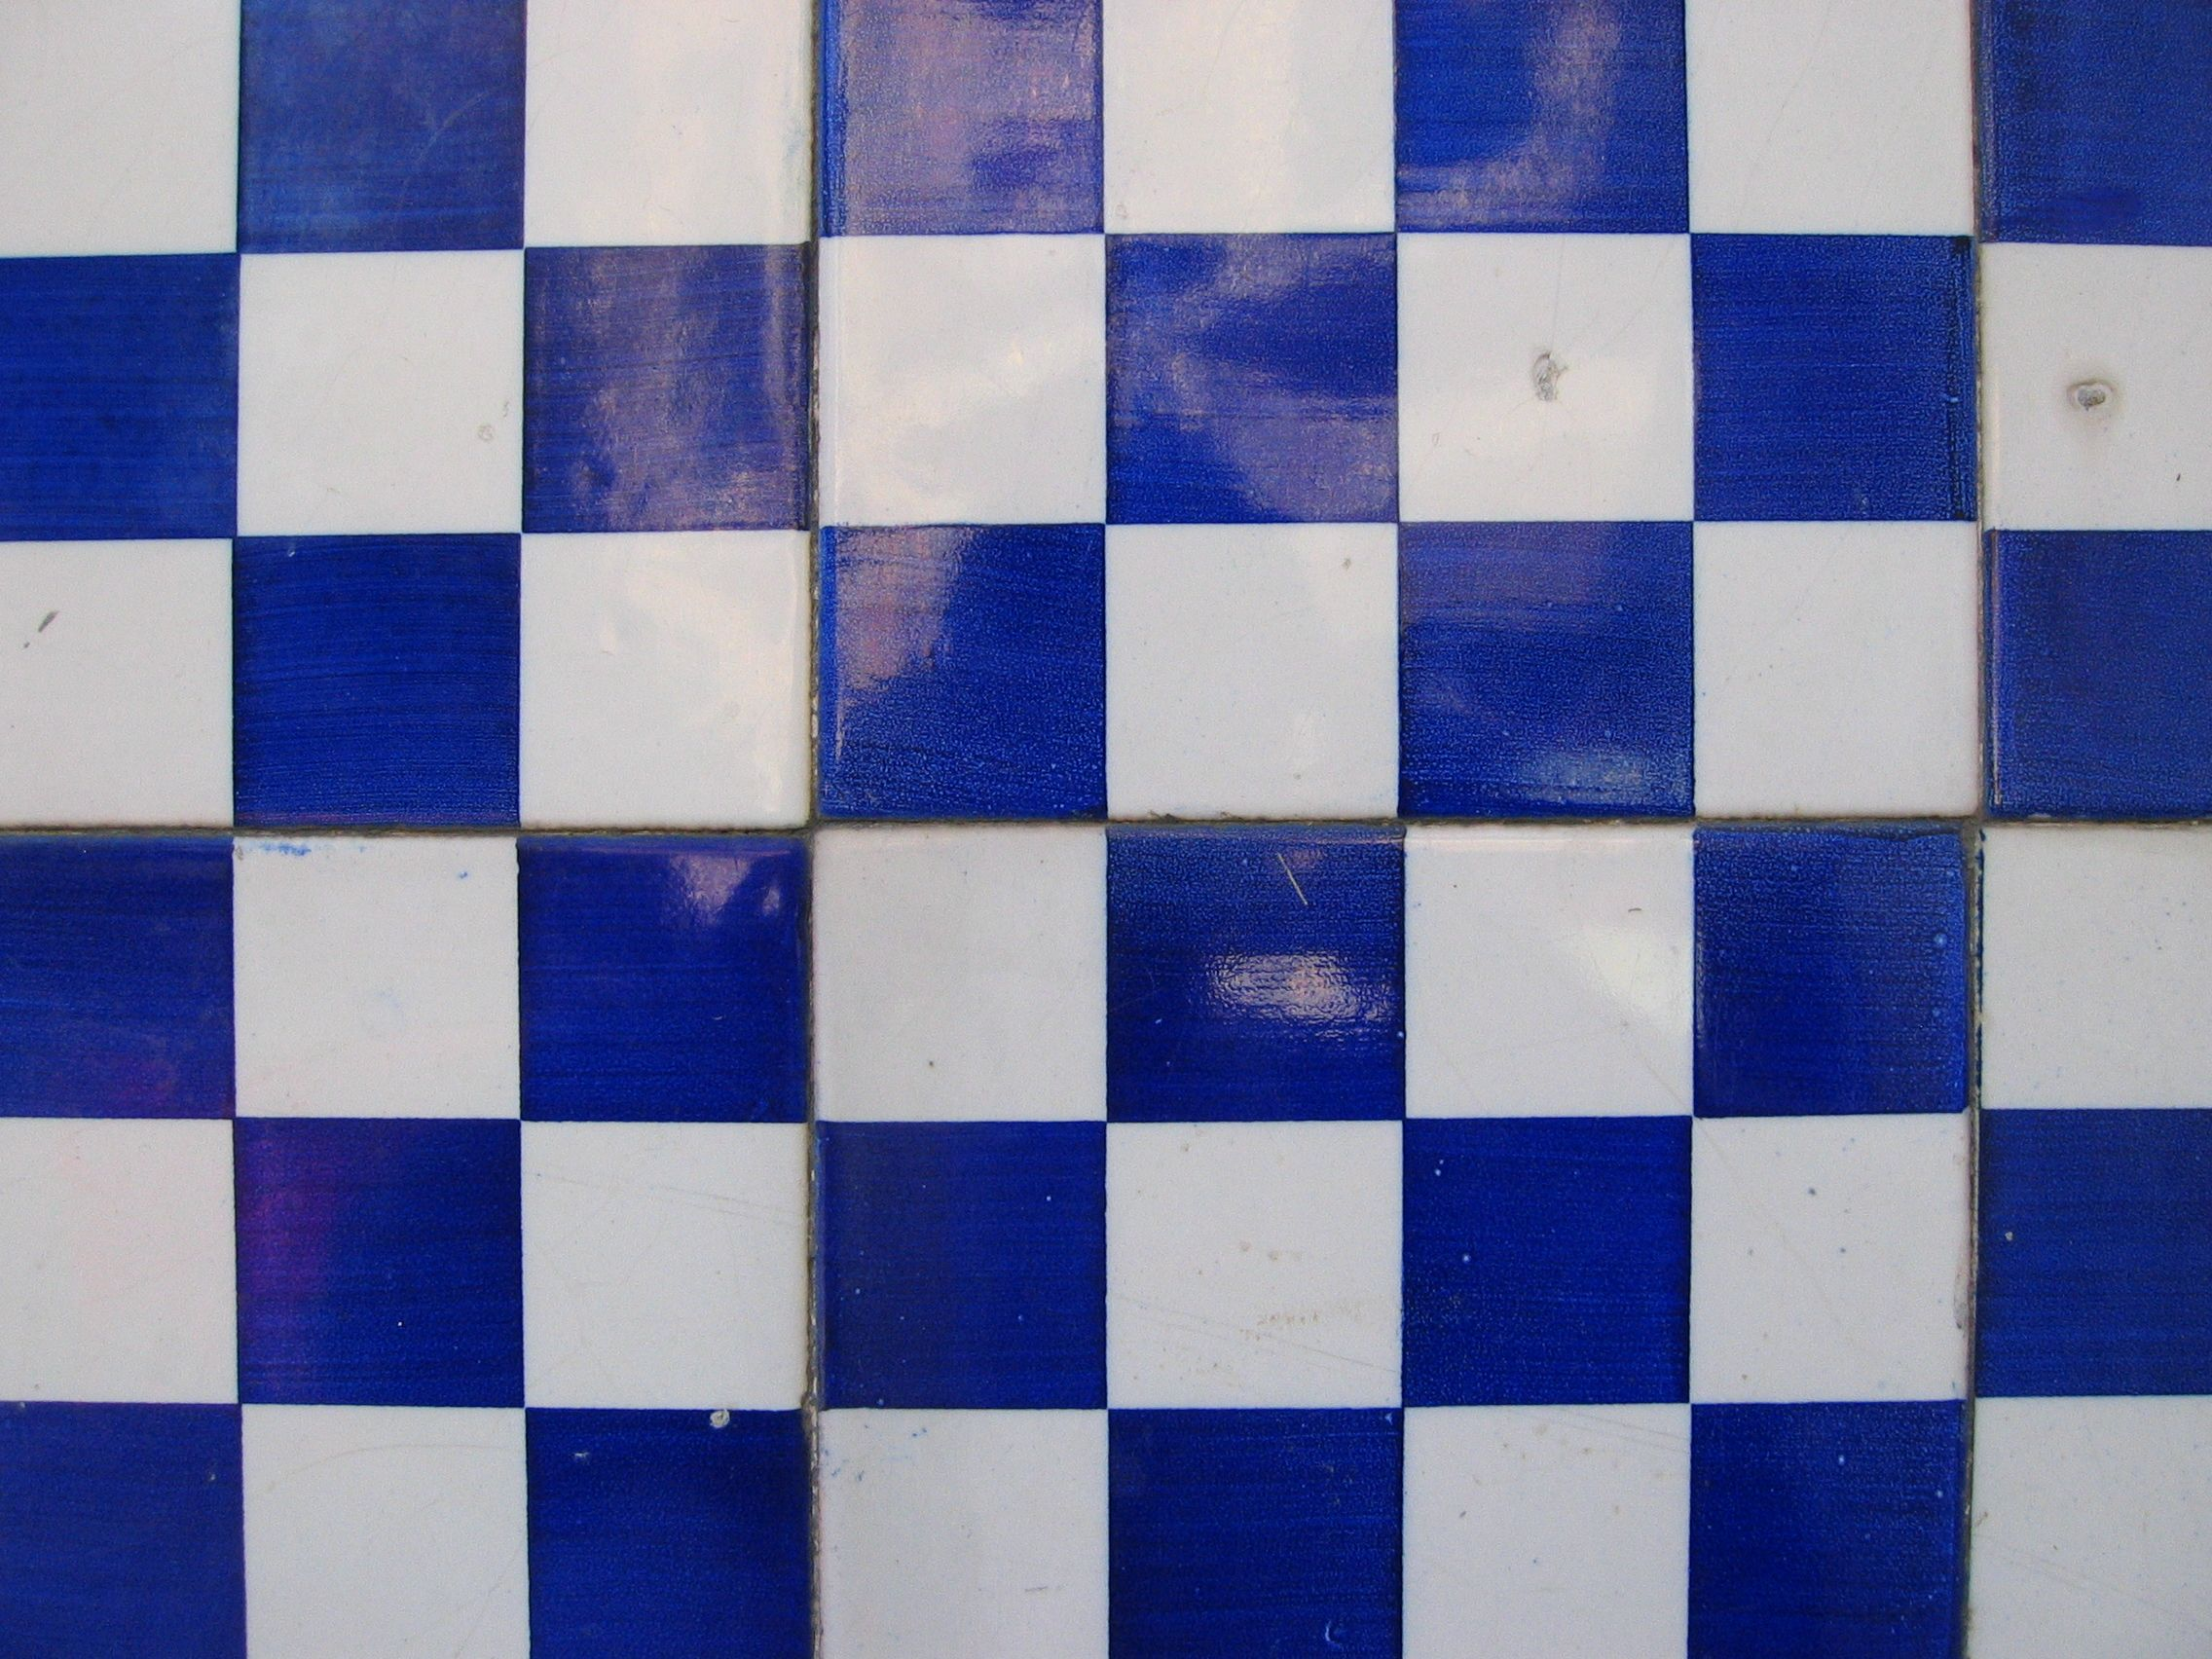 For Blue And White Tile Texture Blue White